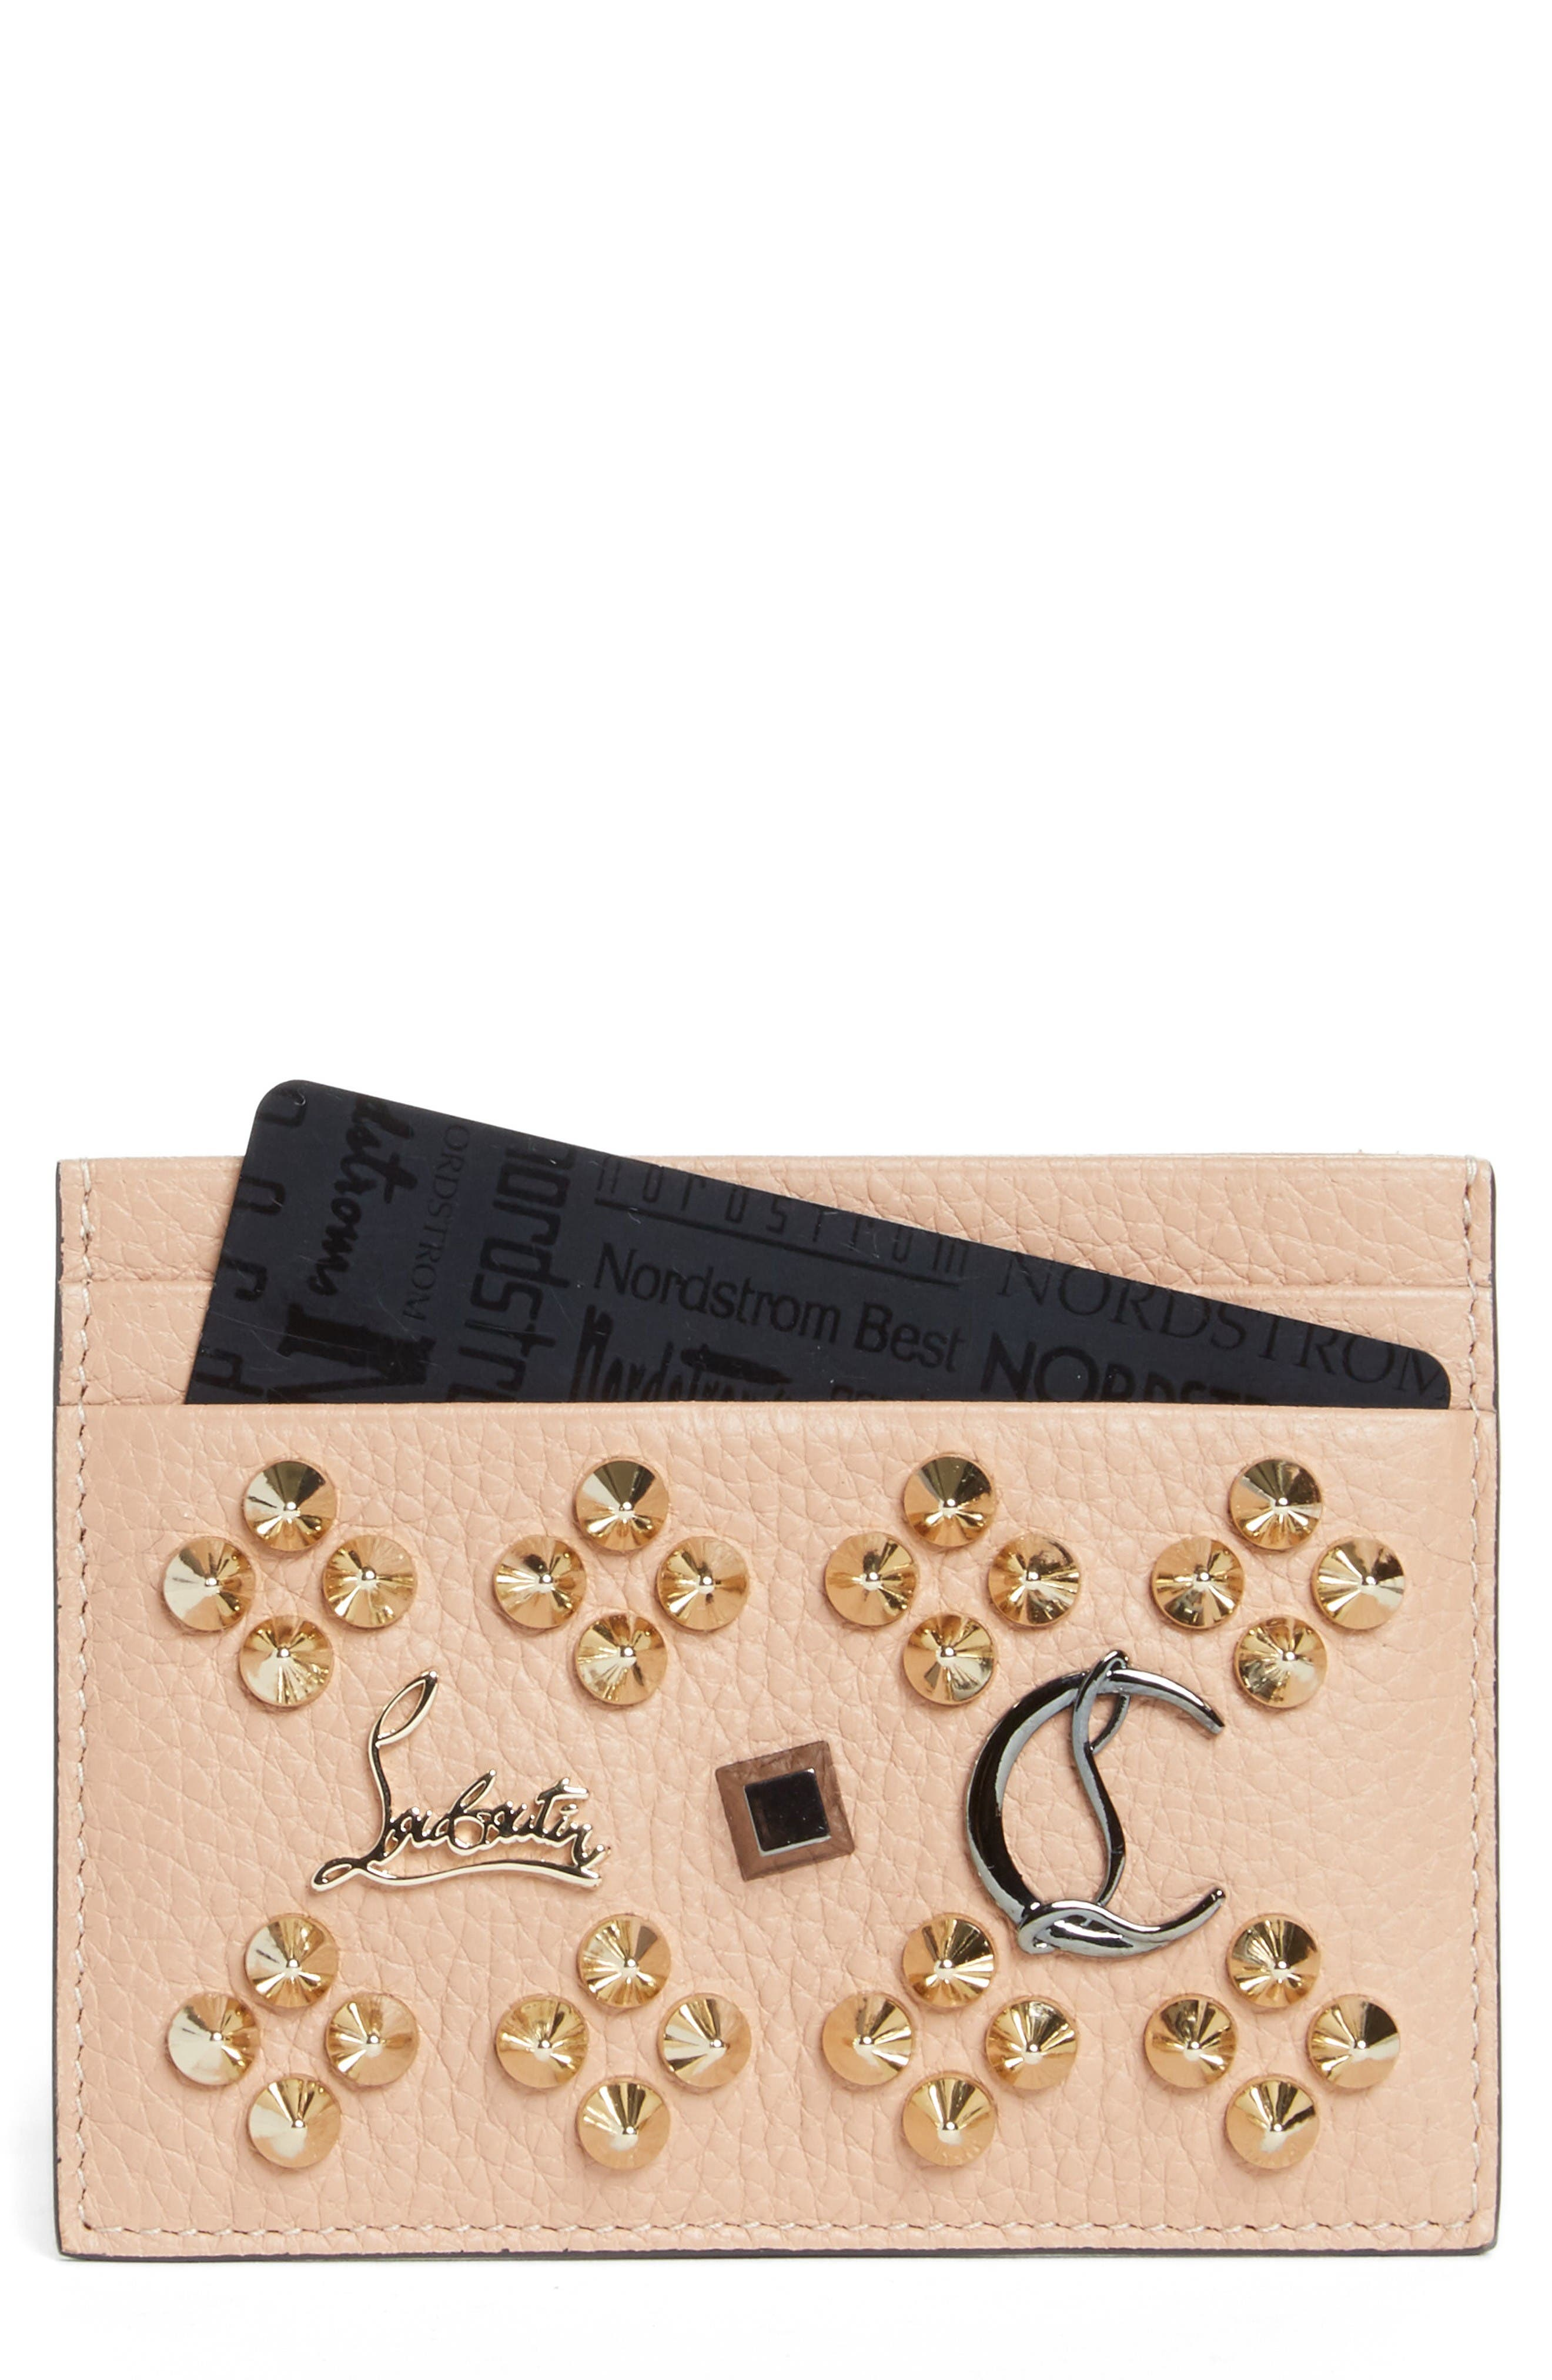 Christian Louboutin Kios Simple Leather Card Case